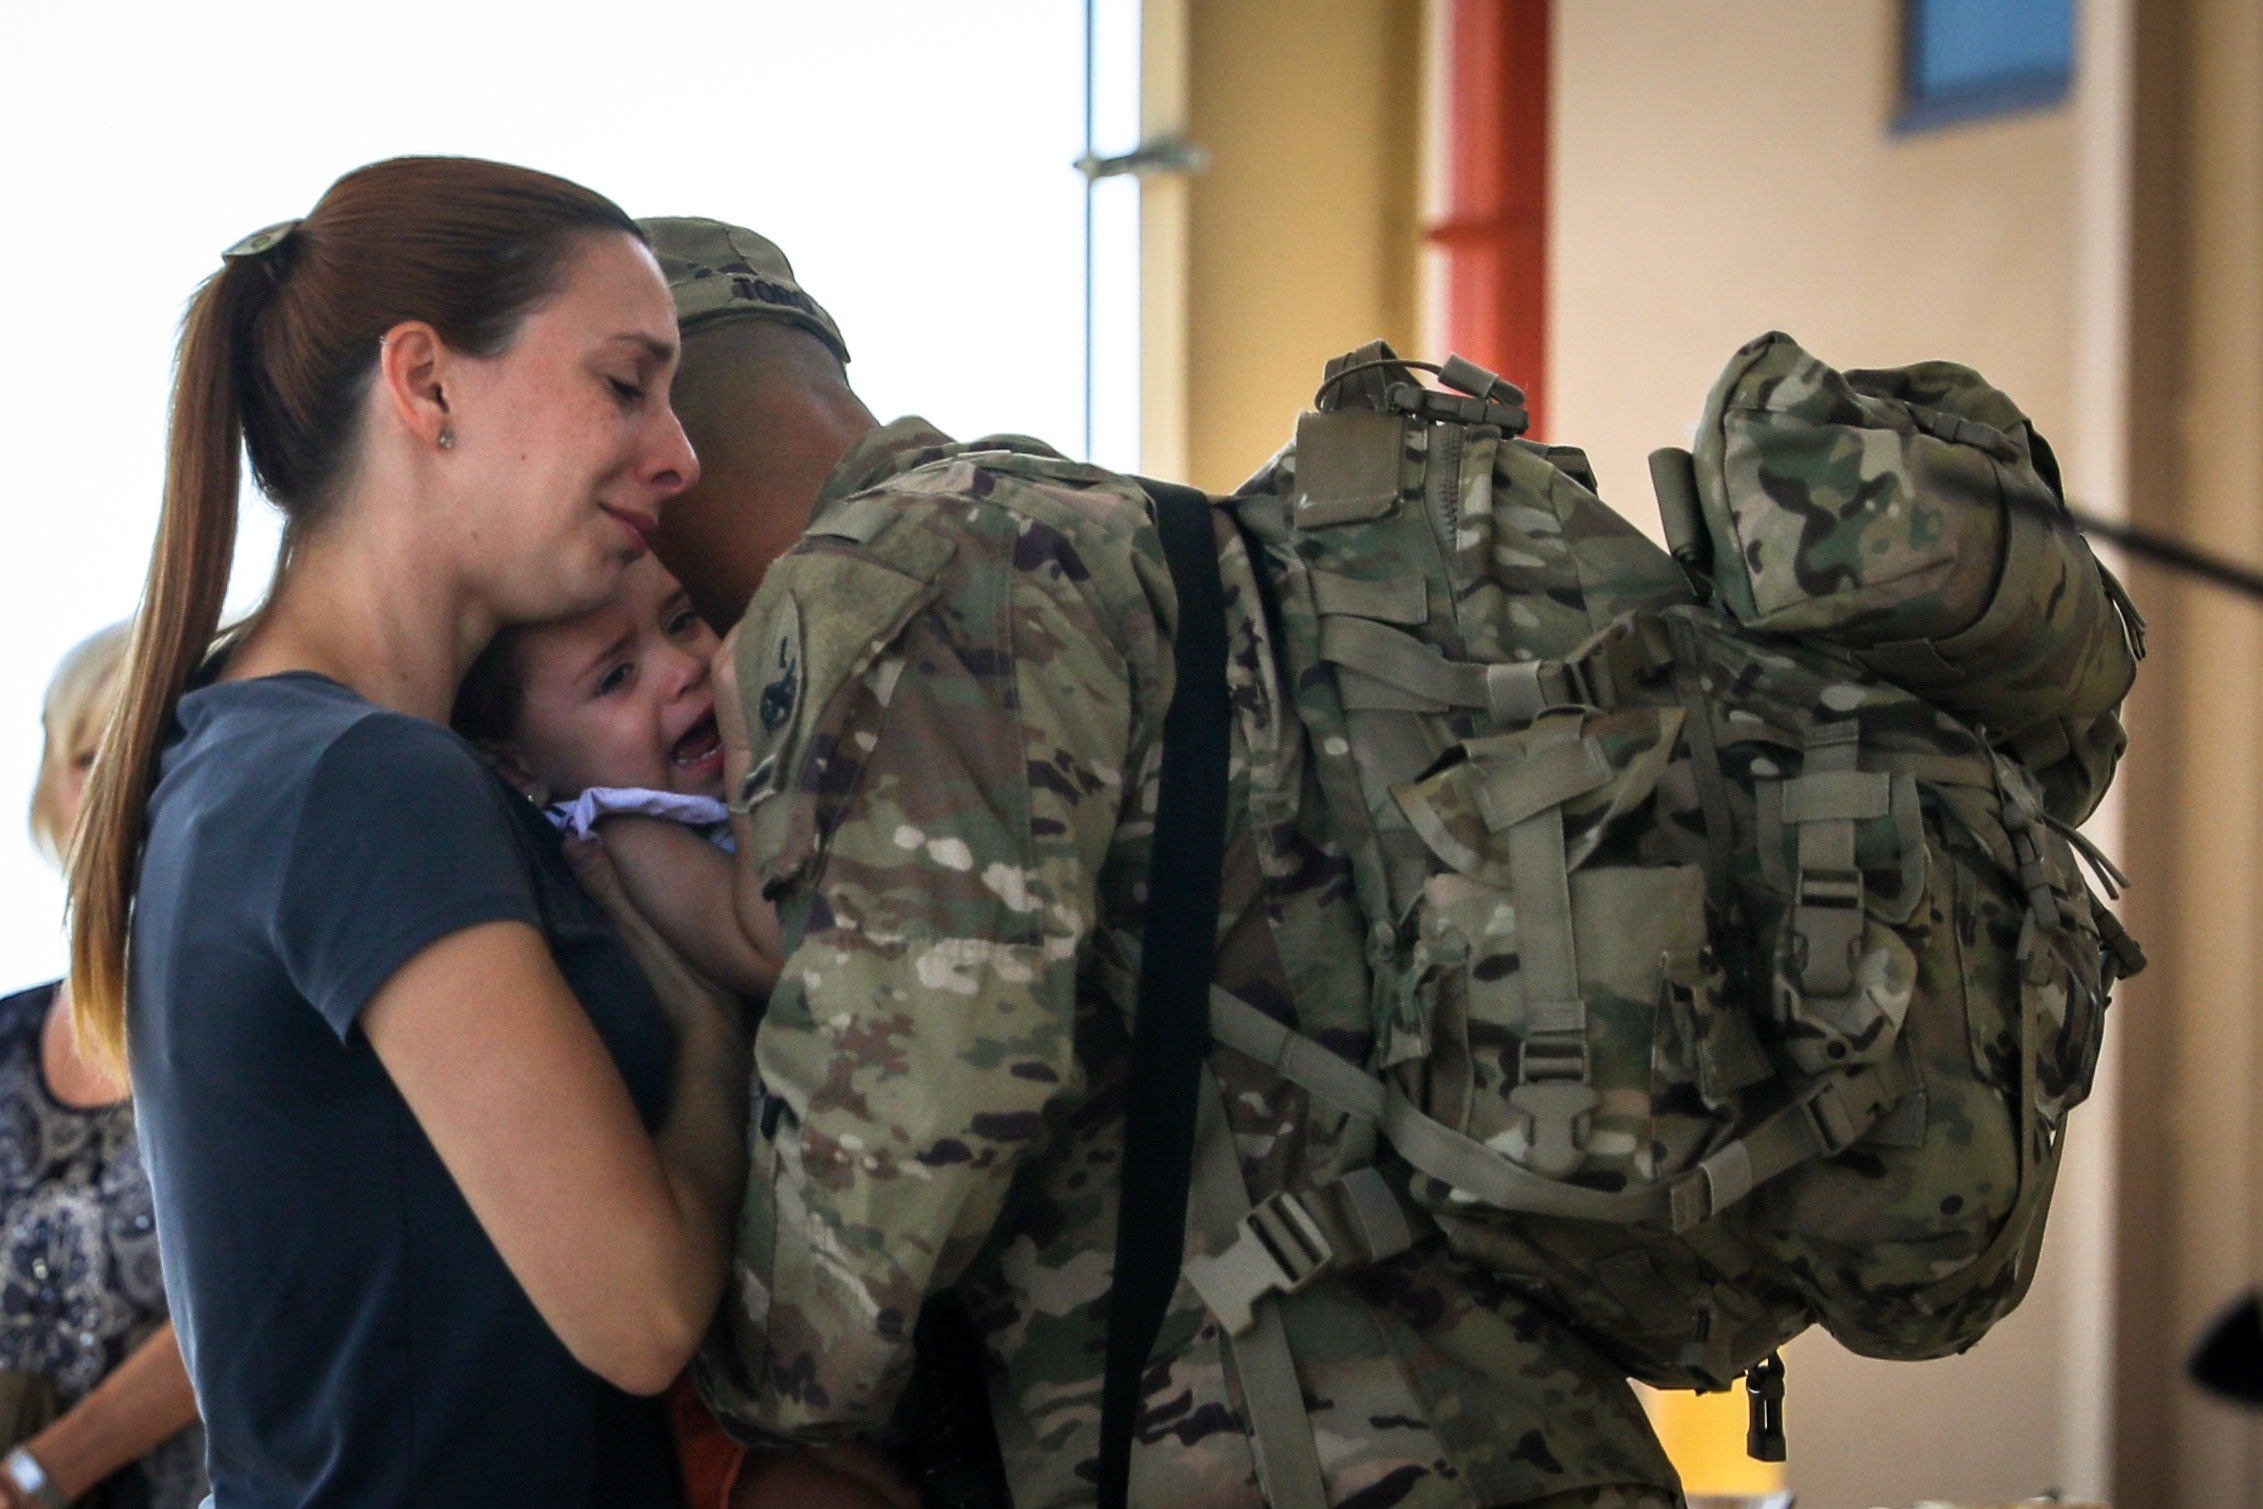 Spc. Eduardo Toro hugs his family as he prepares to depart Fort Bliss, Texas, Aug. 1, as part of a deployment to Afghanistan. (Spc. Matthew J. Marcellus/Army)